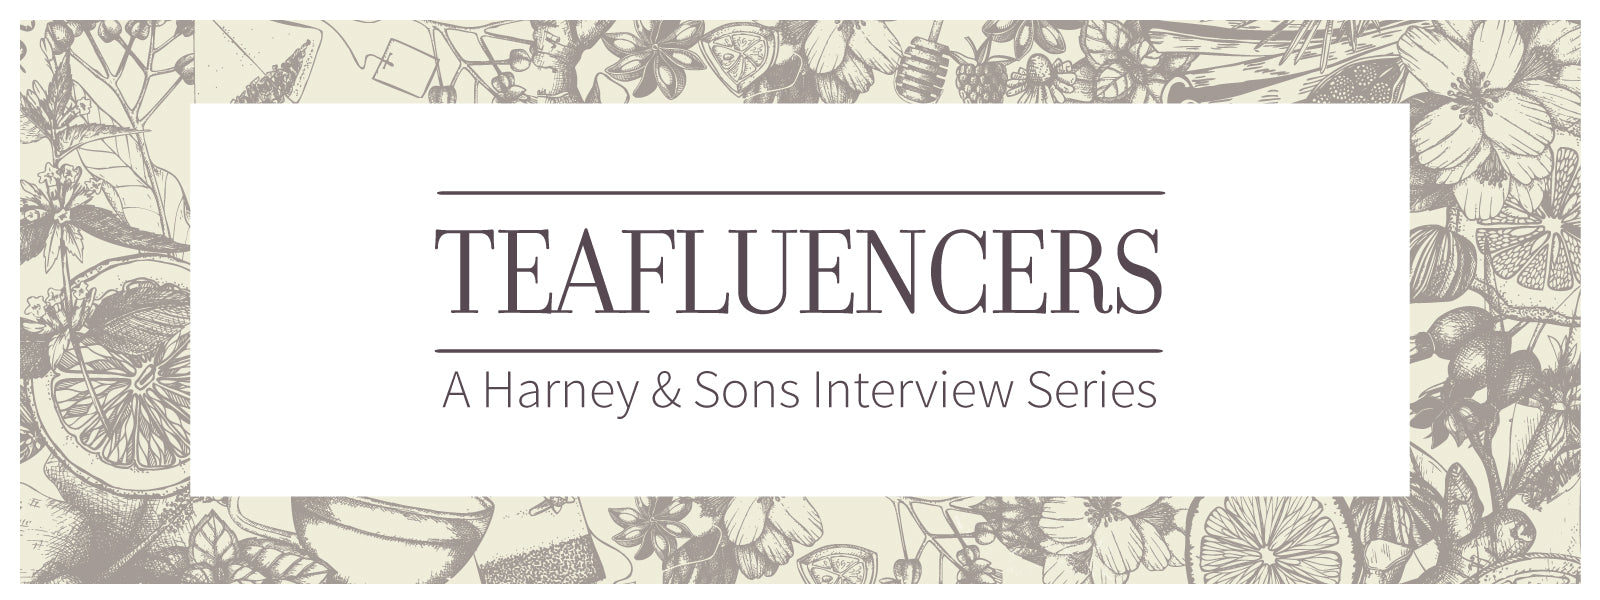 teafluencer-harney